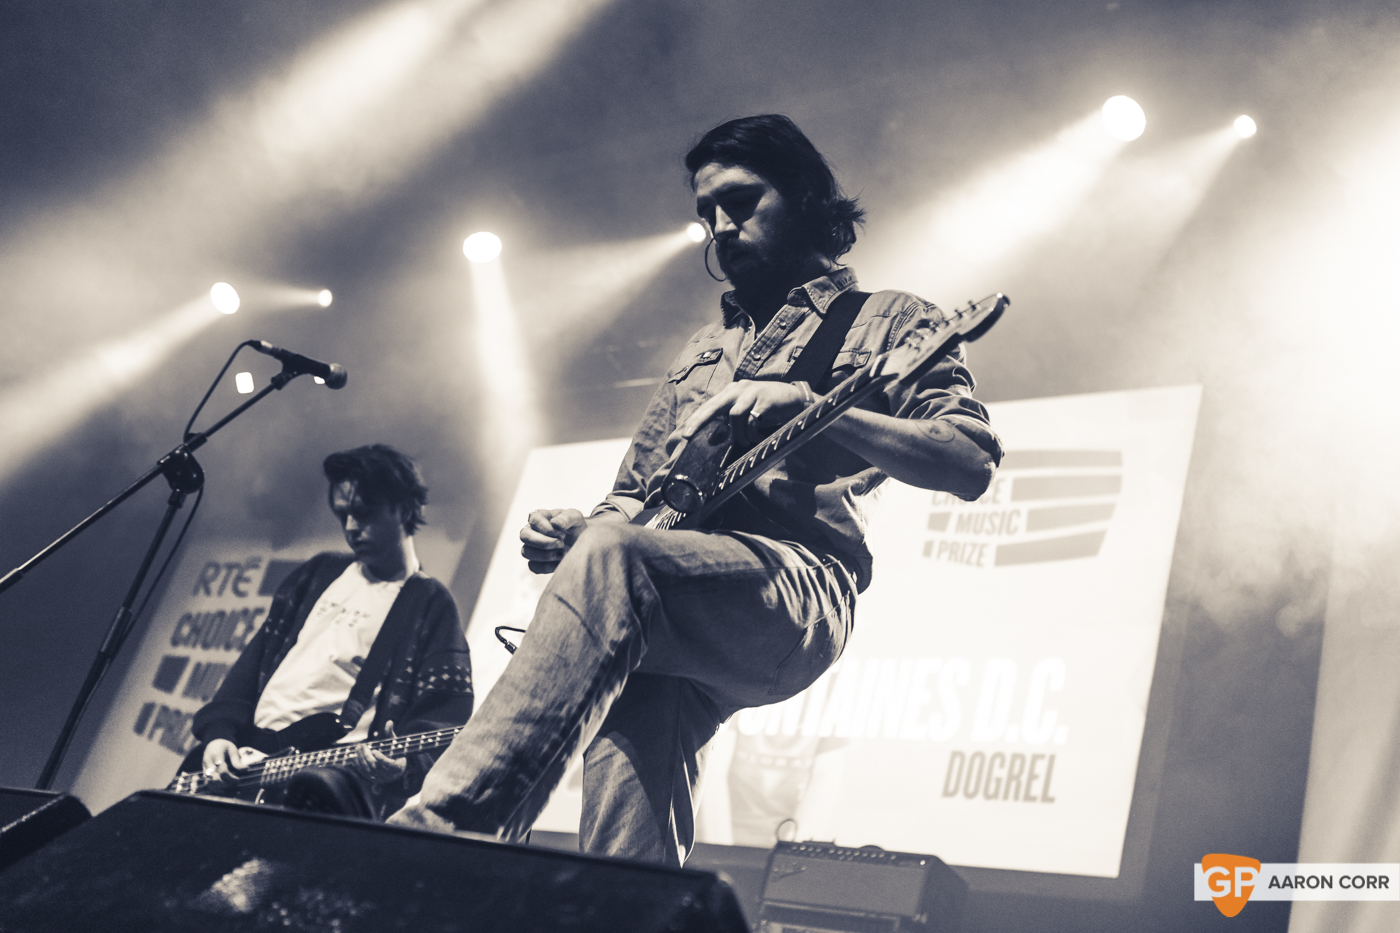 Fontaines DC at Choice Music Prize 2020 in Vicar Street, Dublin on 05-Mar-20 by Aaron Corr-2689